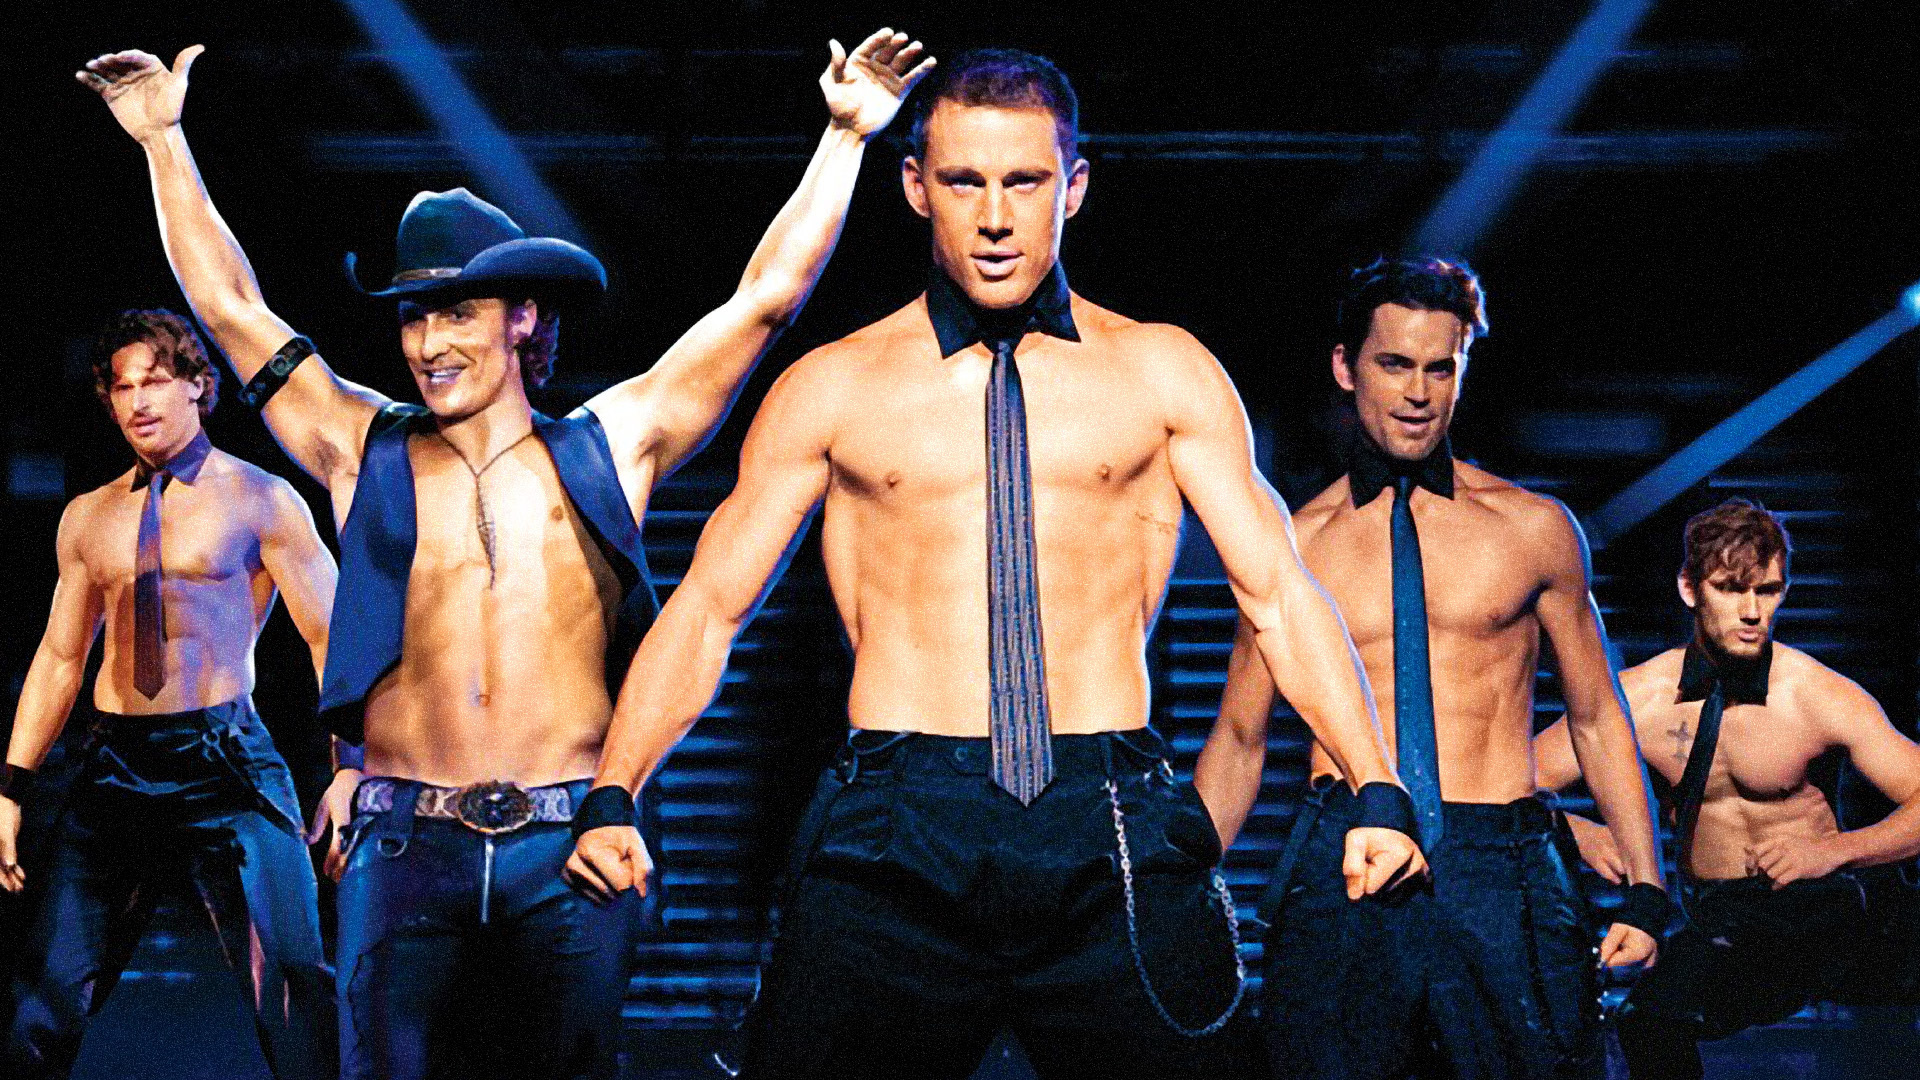 Channing Tatum Possibly to Direct 'Magic Mike' Sequel with Steven